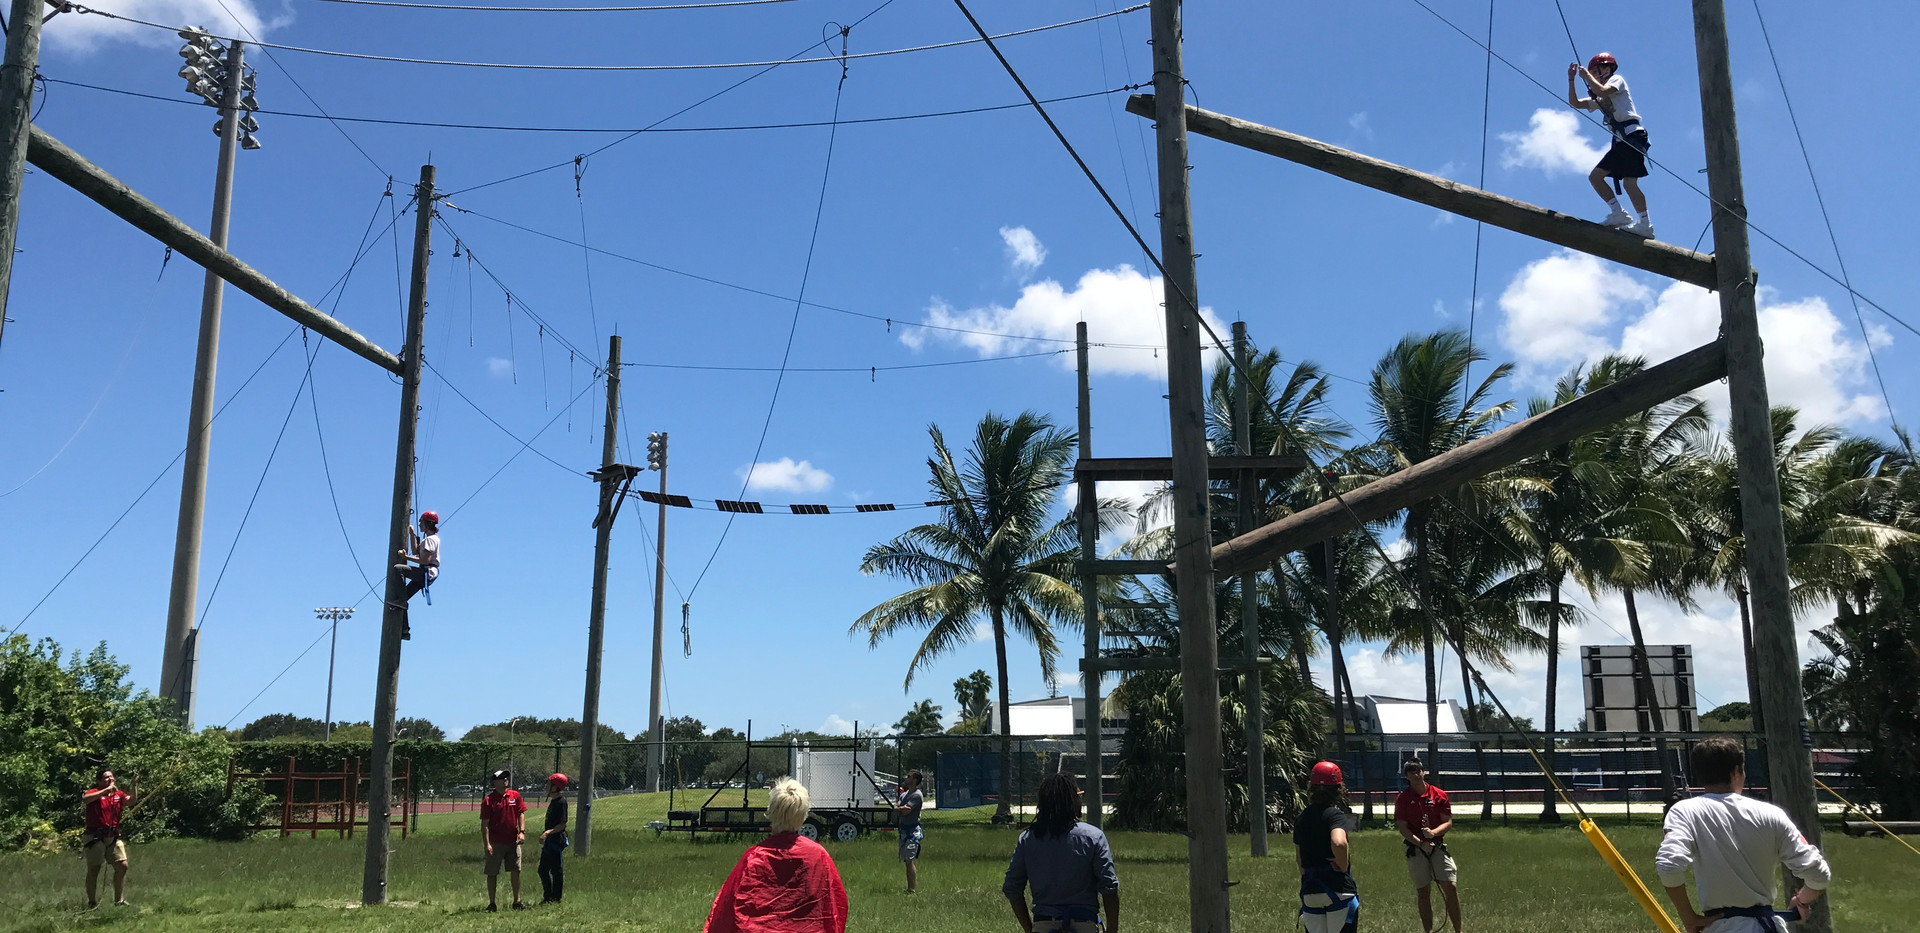 Ropes-Course-Experiential-Therapy-Family-First-Adolescent-Services.JPG